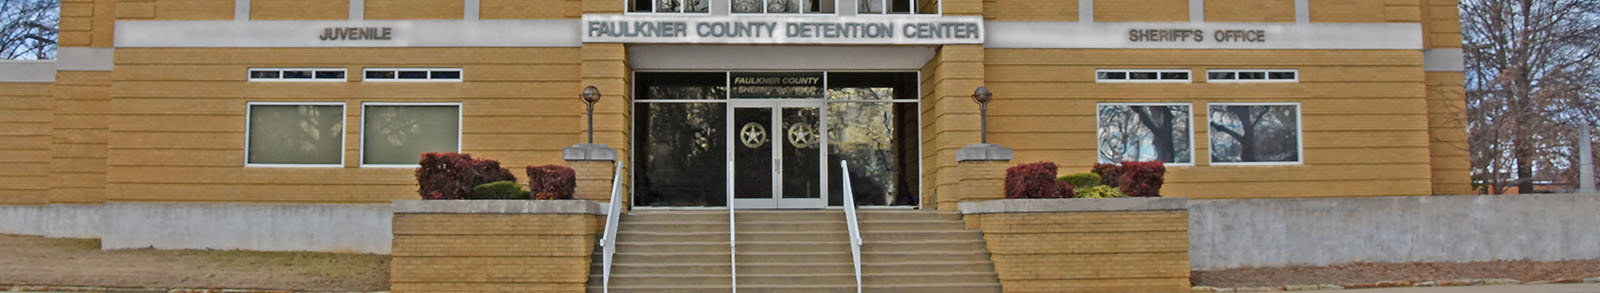 Faulkner County Detention Center Entrance.